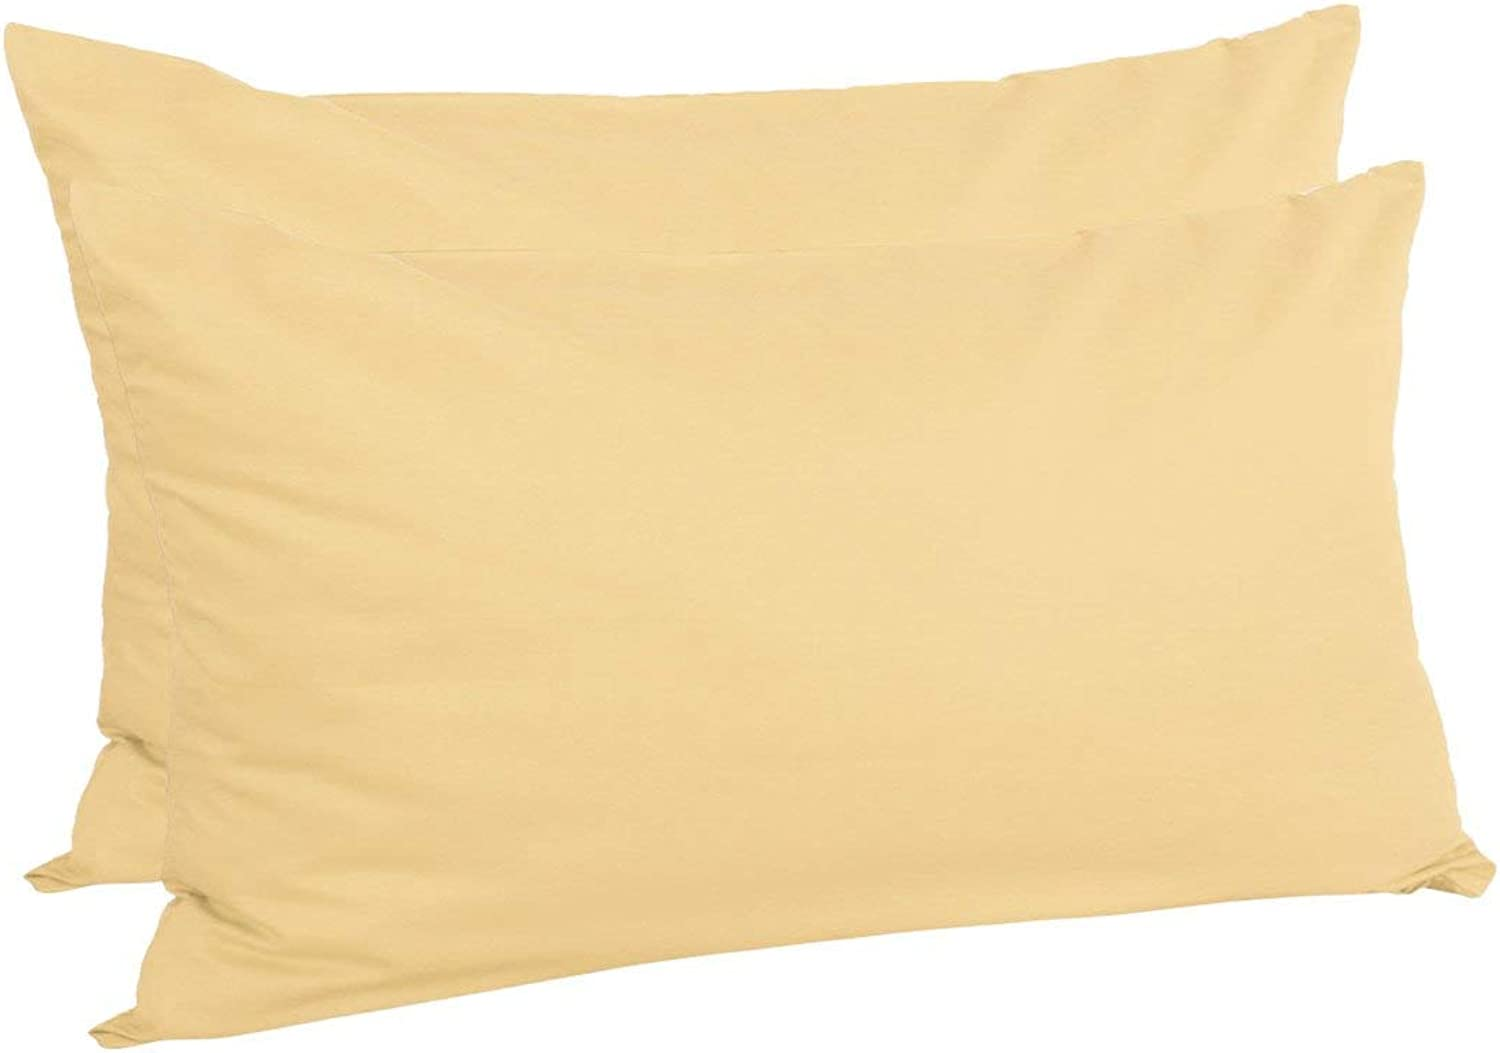 King (20\ x 36\), Yellow   Zippered King Pillow Cases Pillowcases Covers Predectors, Egyptian Cotton 300 Thread Count, 20 x 36 Inch, Yellow, Set of 2